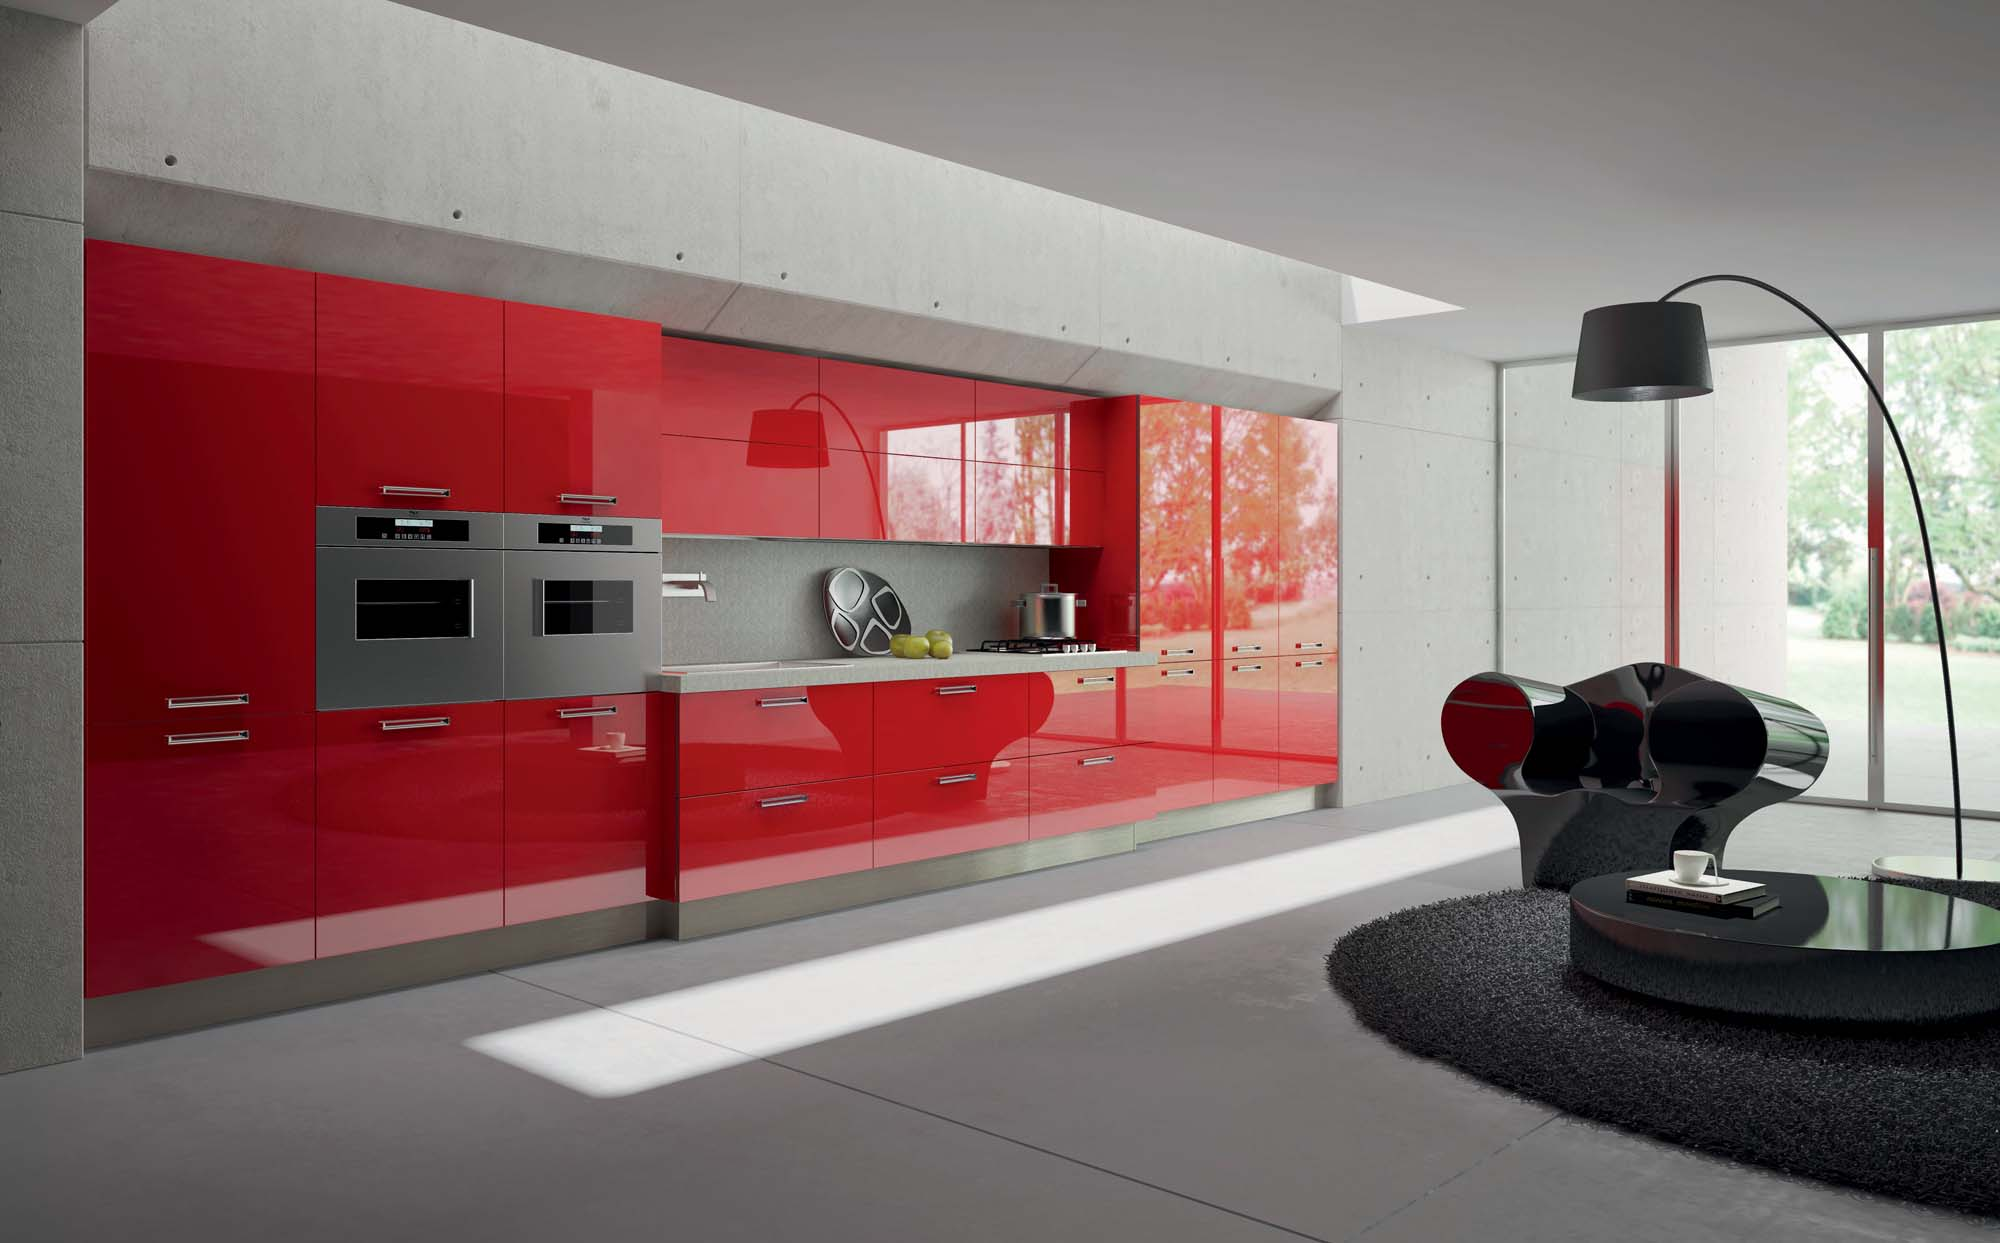 Kitchen design ideas in red color